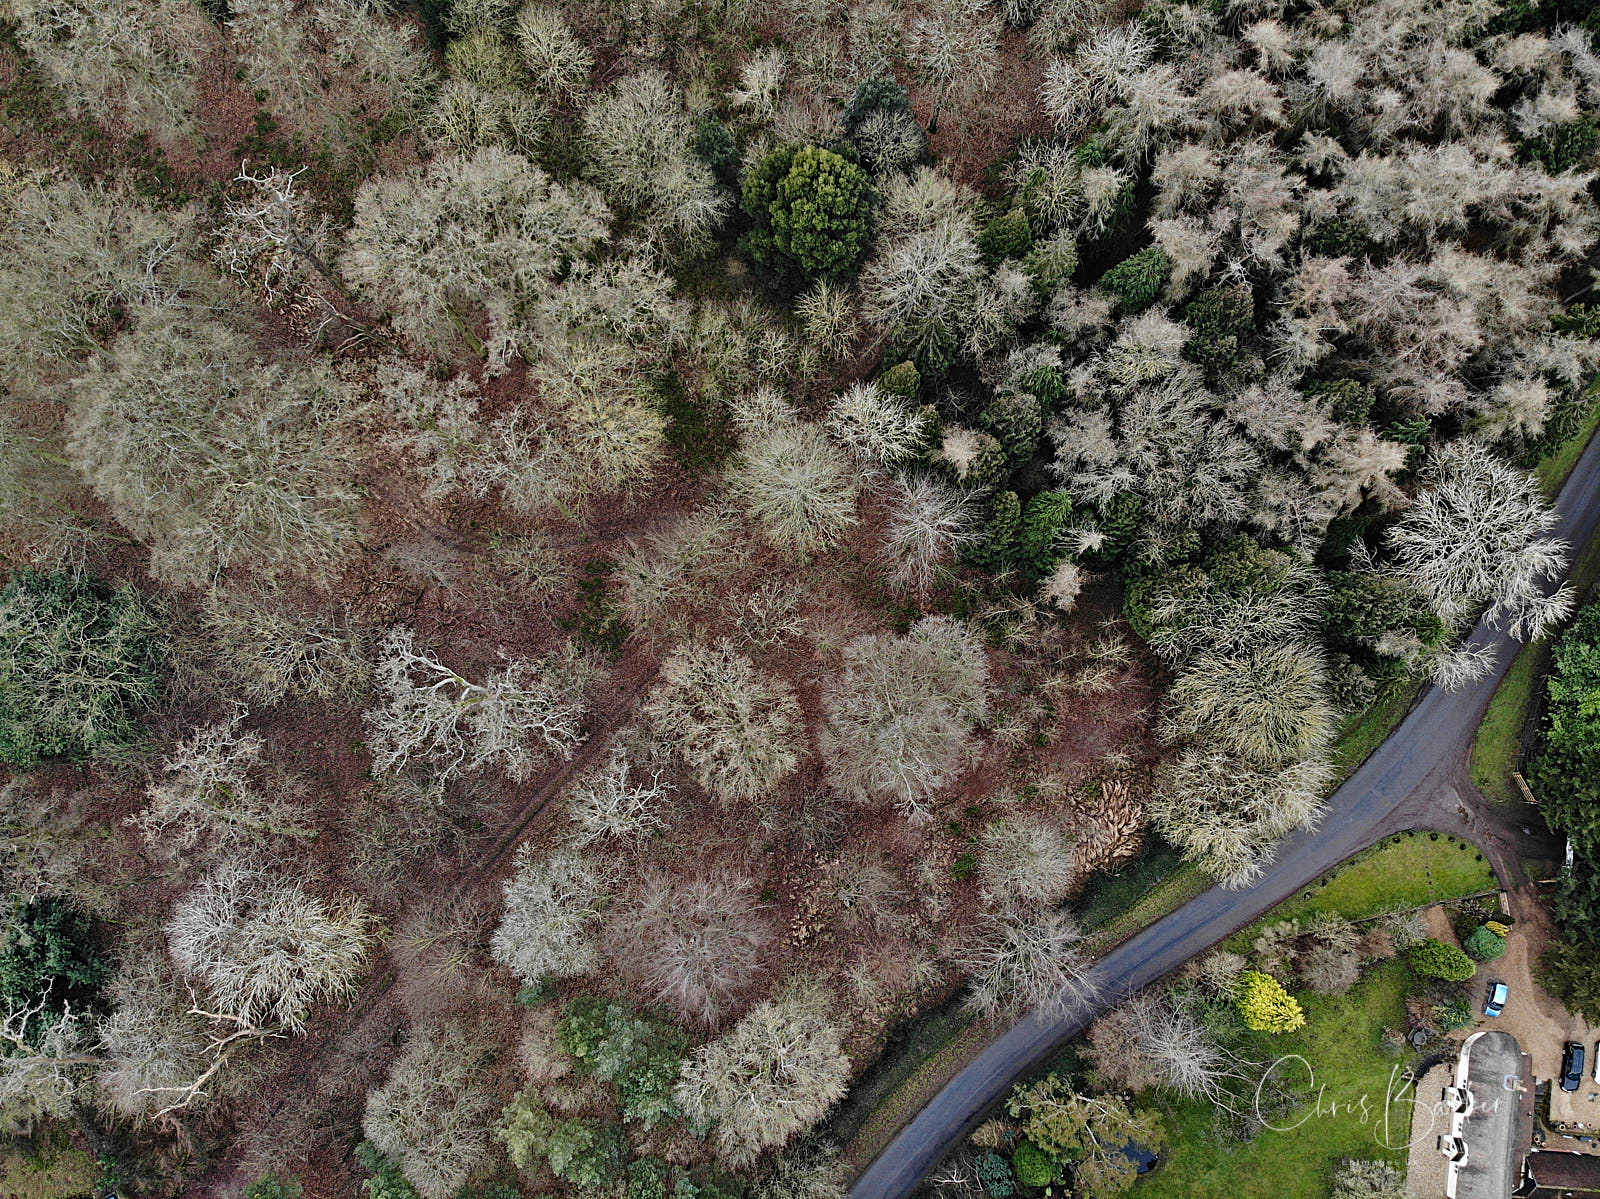 Trees viewed from above by drone